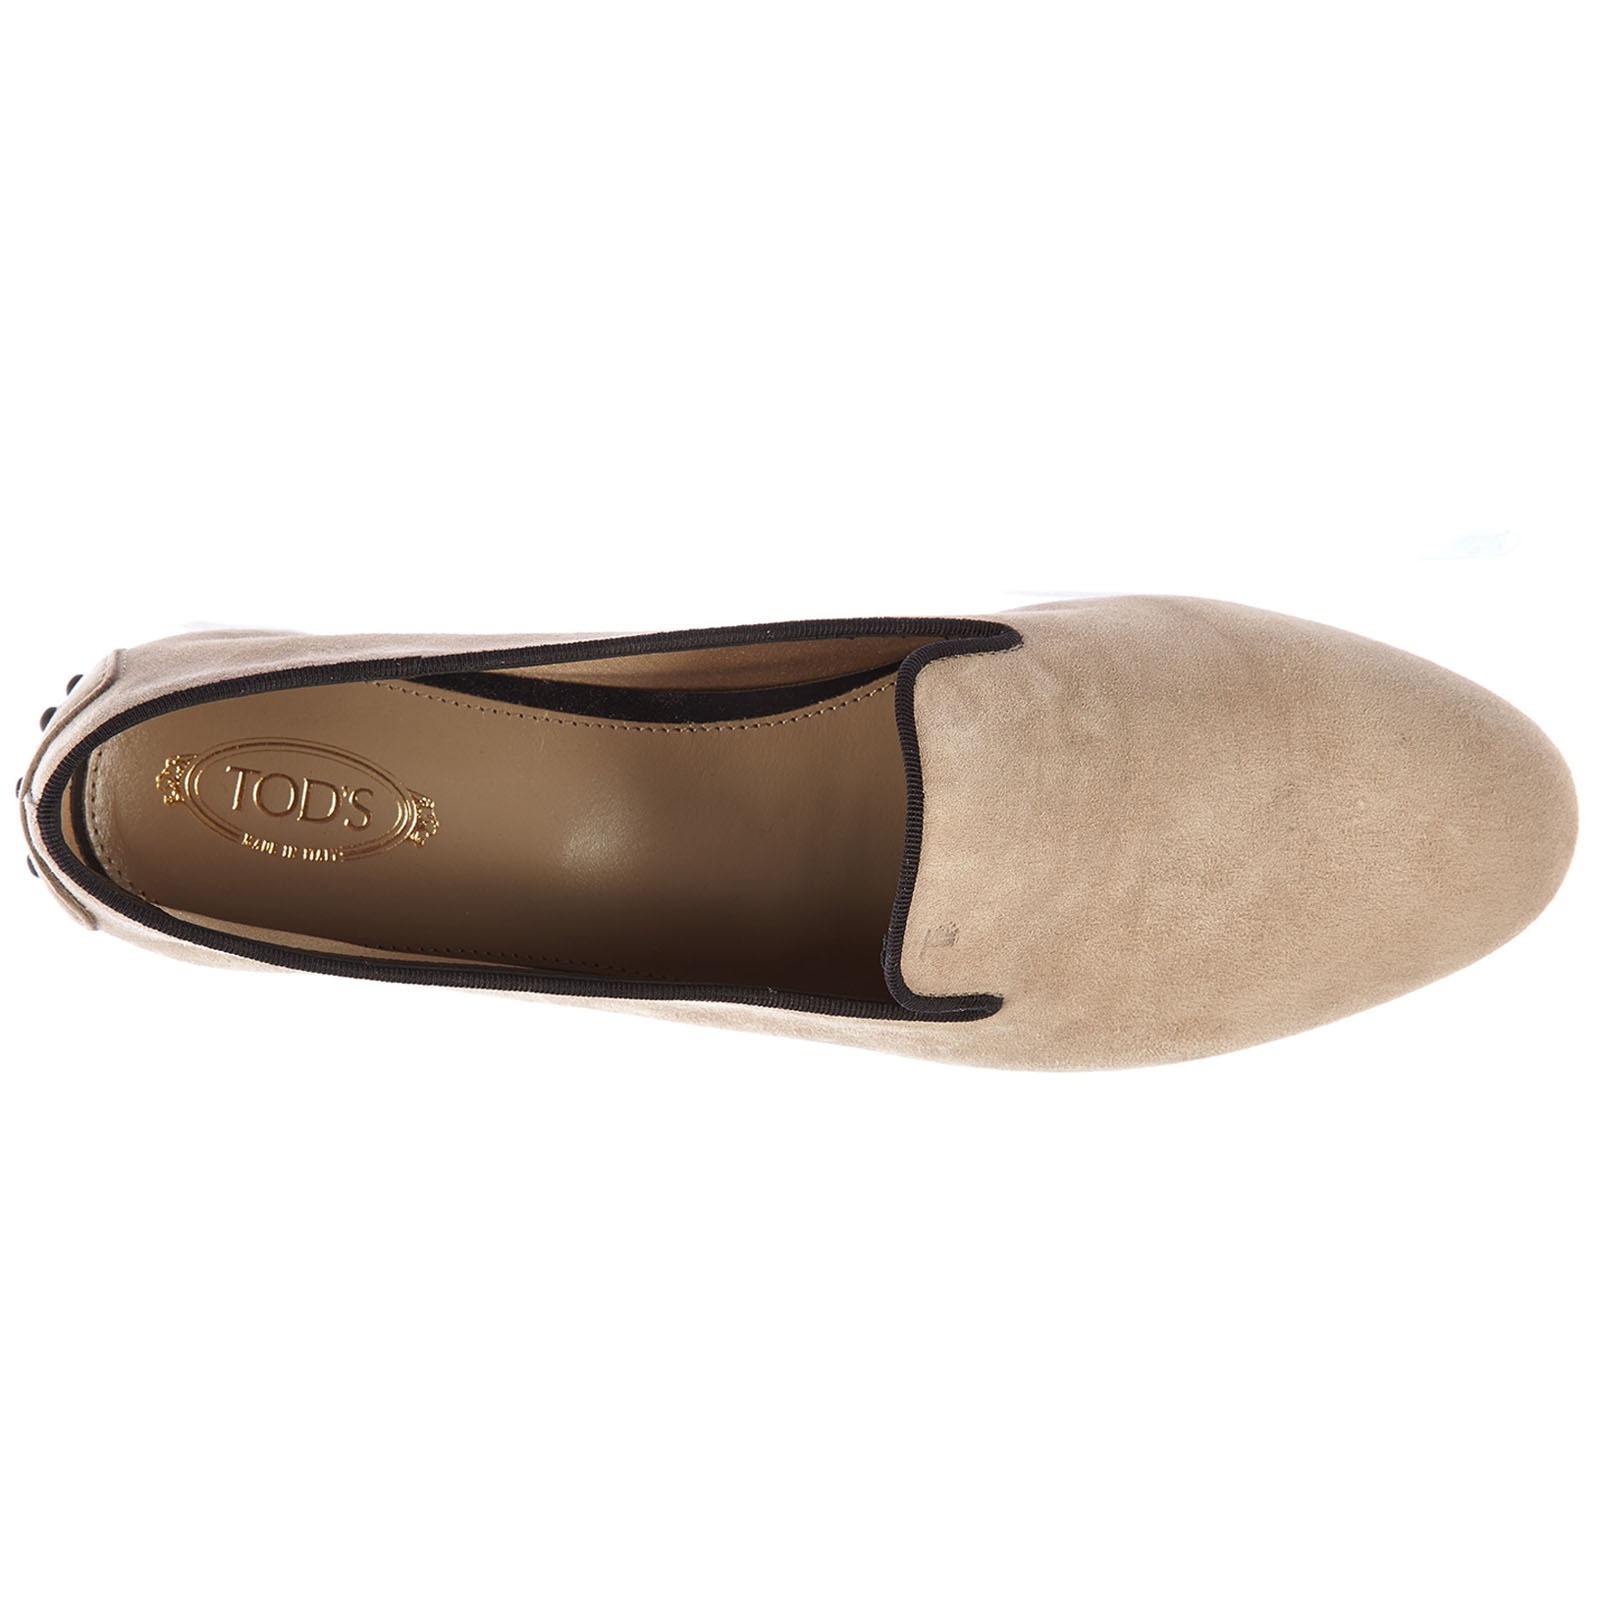 Damen wildleder mokassins slipper corda